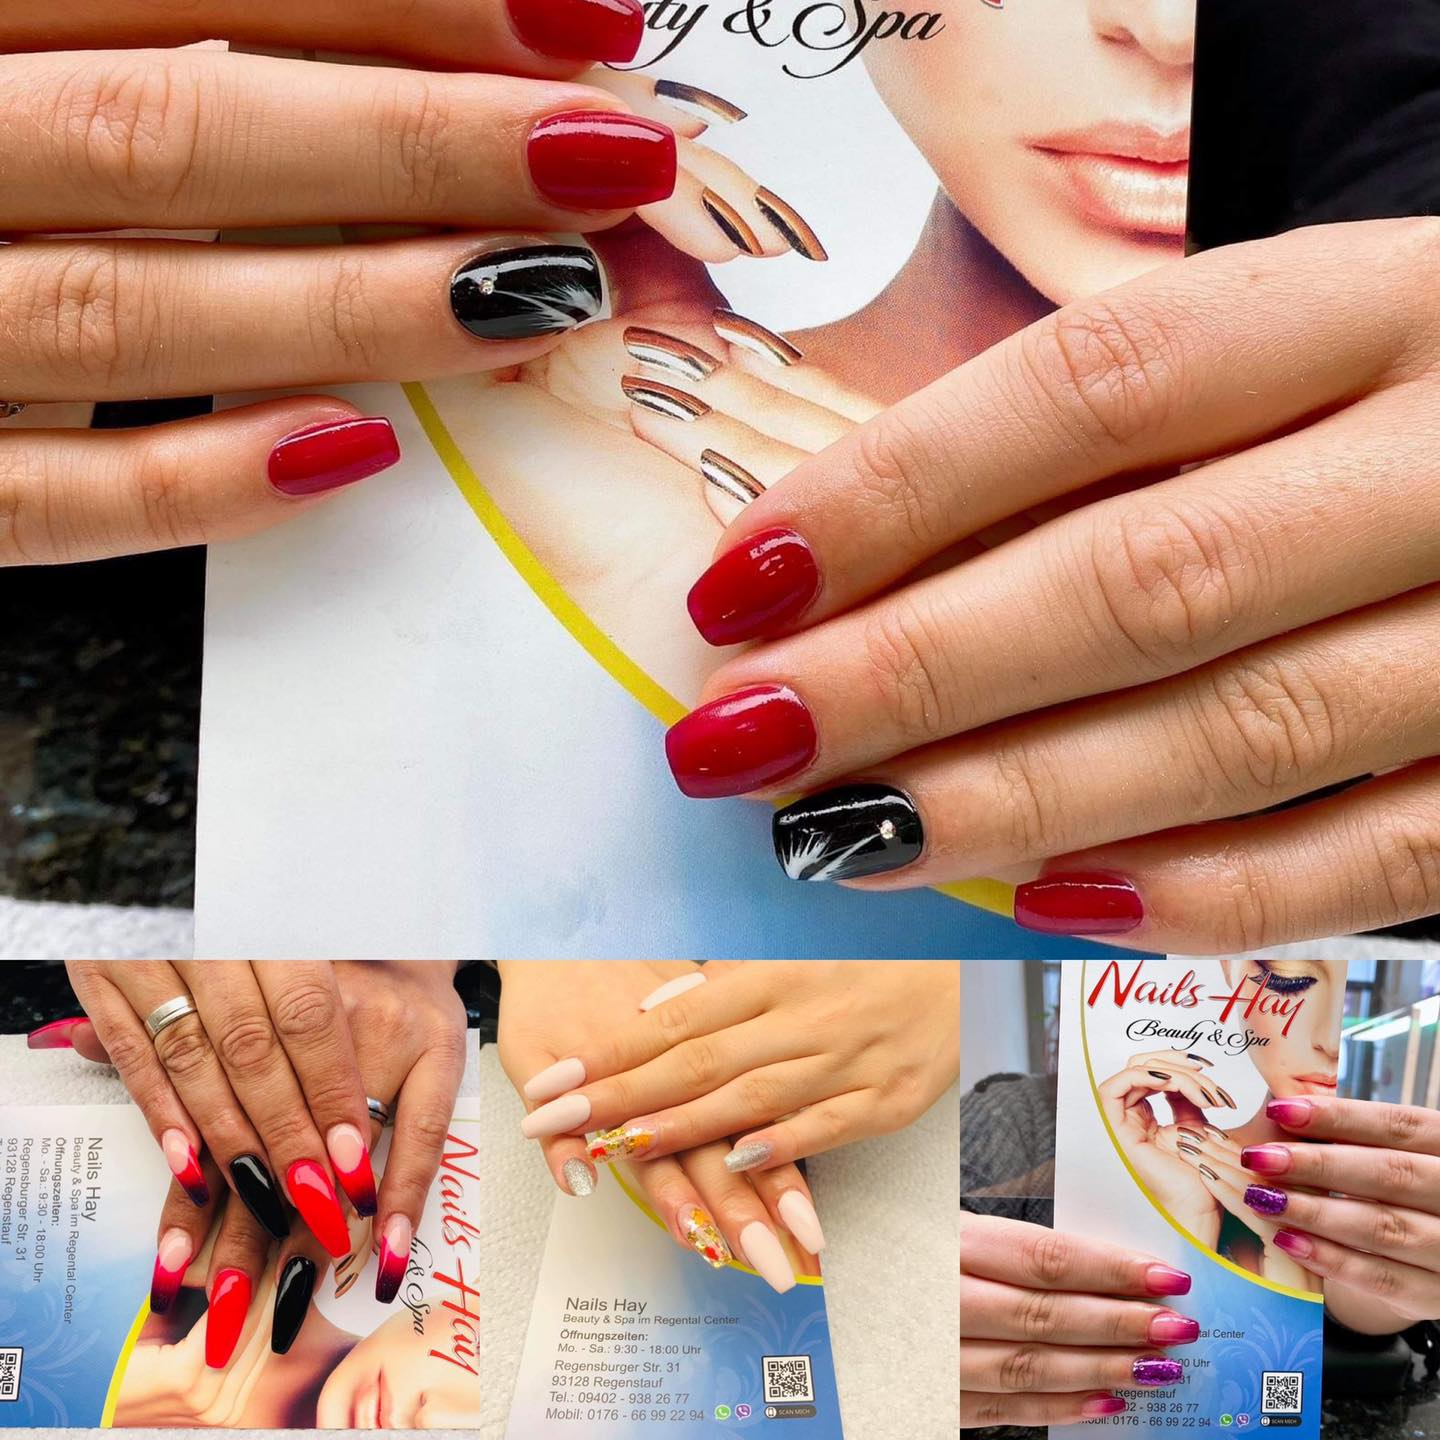 Regental Center Nails & Beauty Regensburger Str 31 93128 Regenstauf